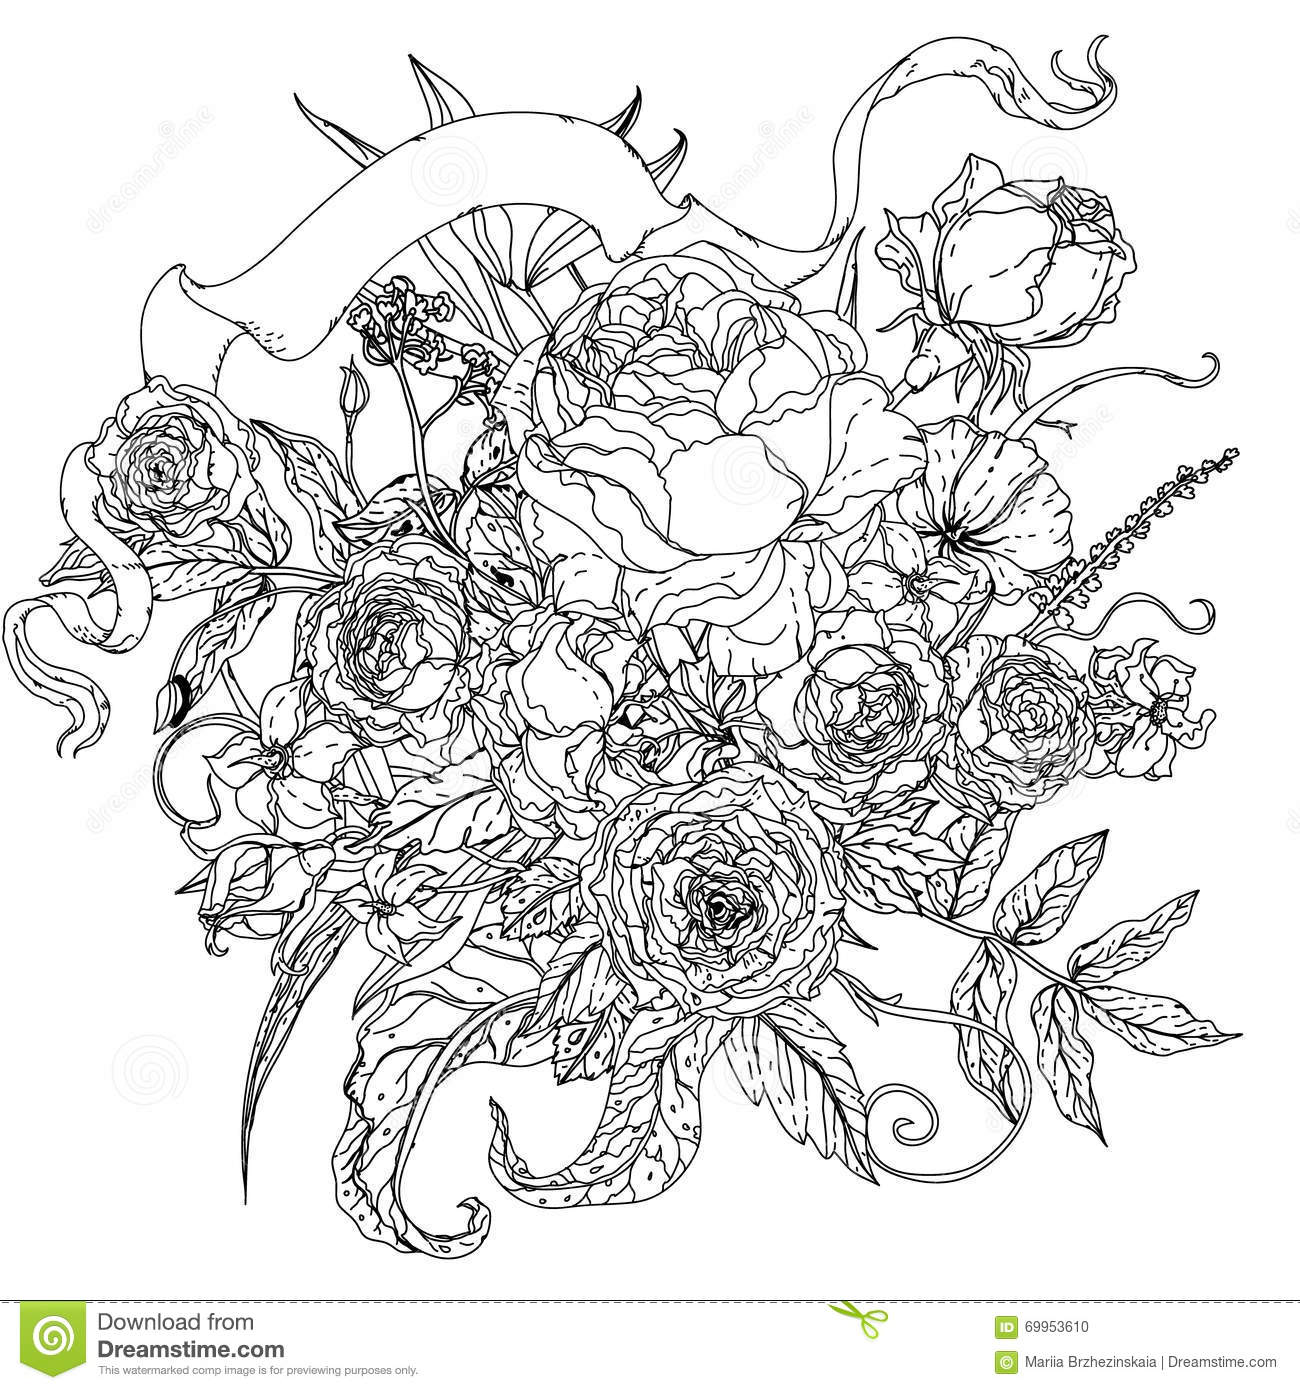 uncolored pictures of flowers uncolored bird baby keeping a flower tattoo design pictures of flowers uncolored